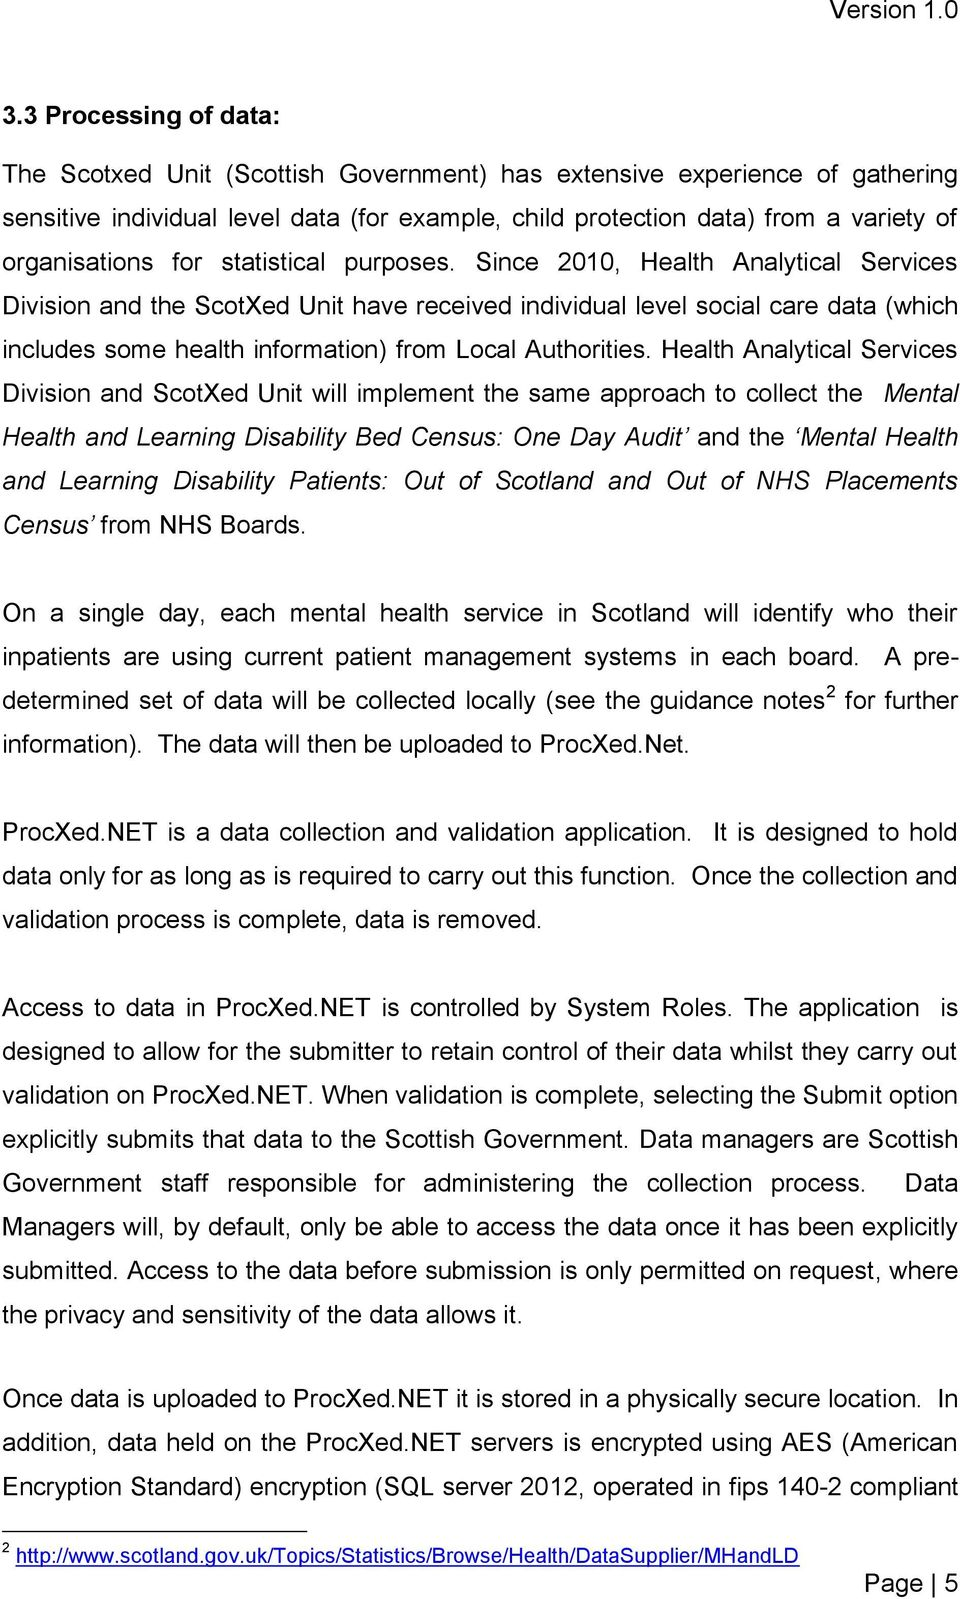 Since 2010, Health Analytical Services Division and the ScotXed Unit have received individual level social care data (which includes some health information) from Local Authorities.